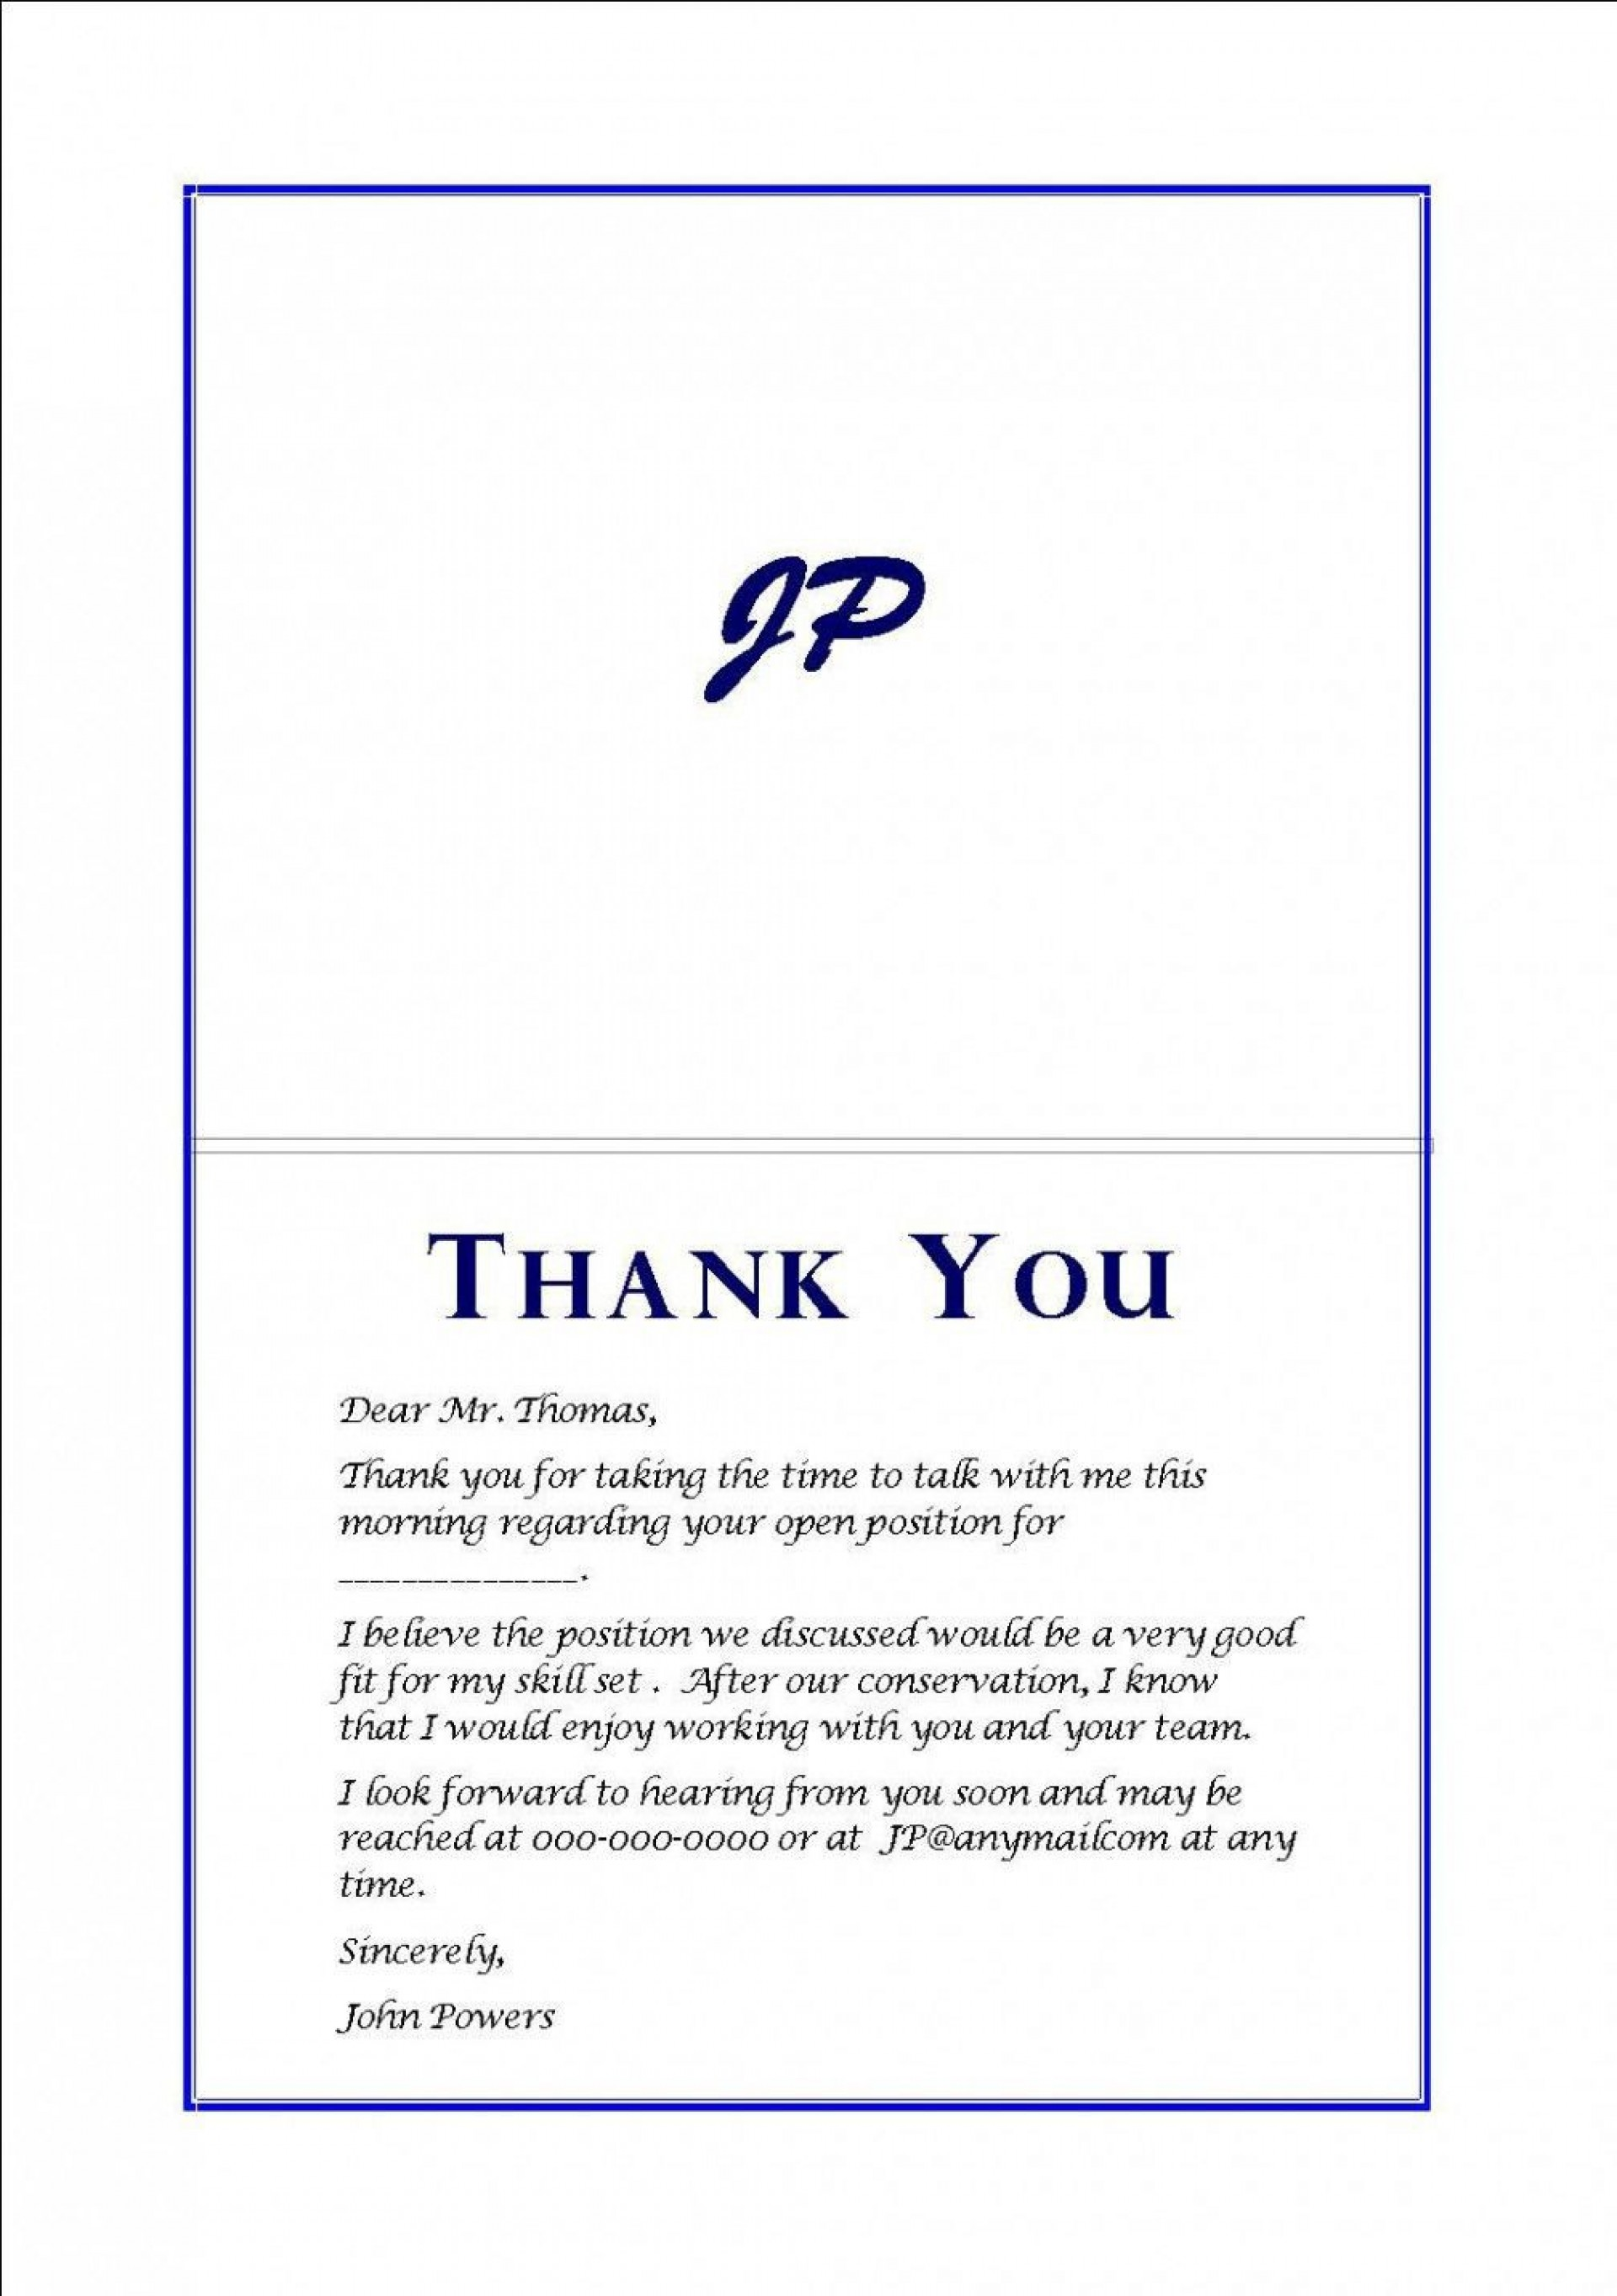 000 Imposing Thank You Note Template After Phone Interview Sample  Letter Example1920